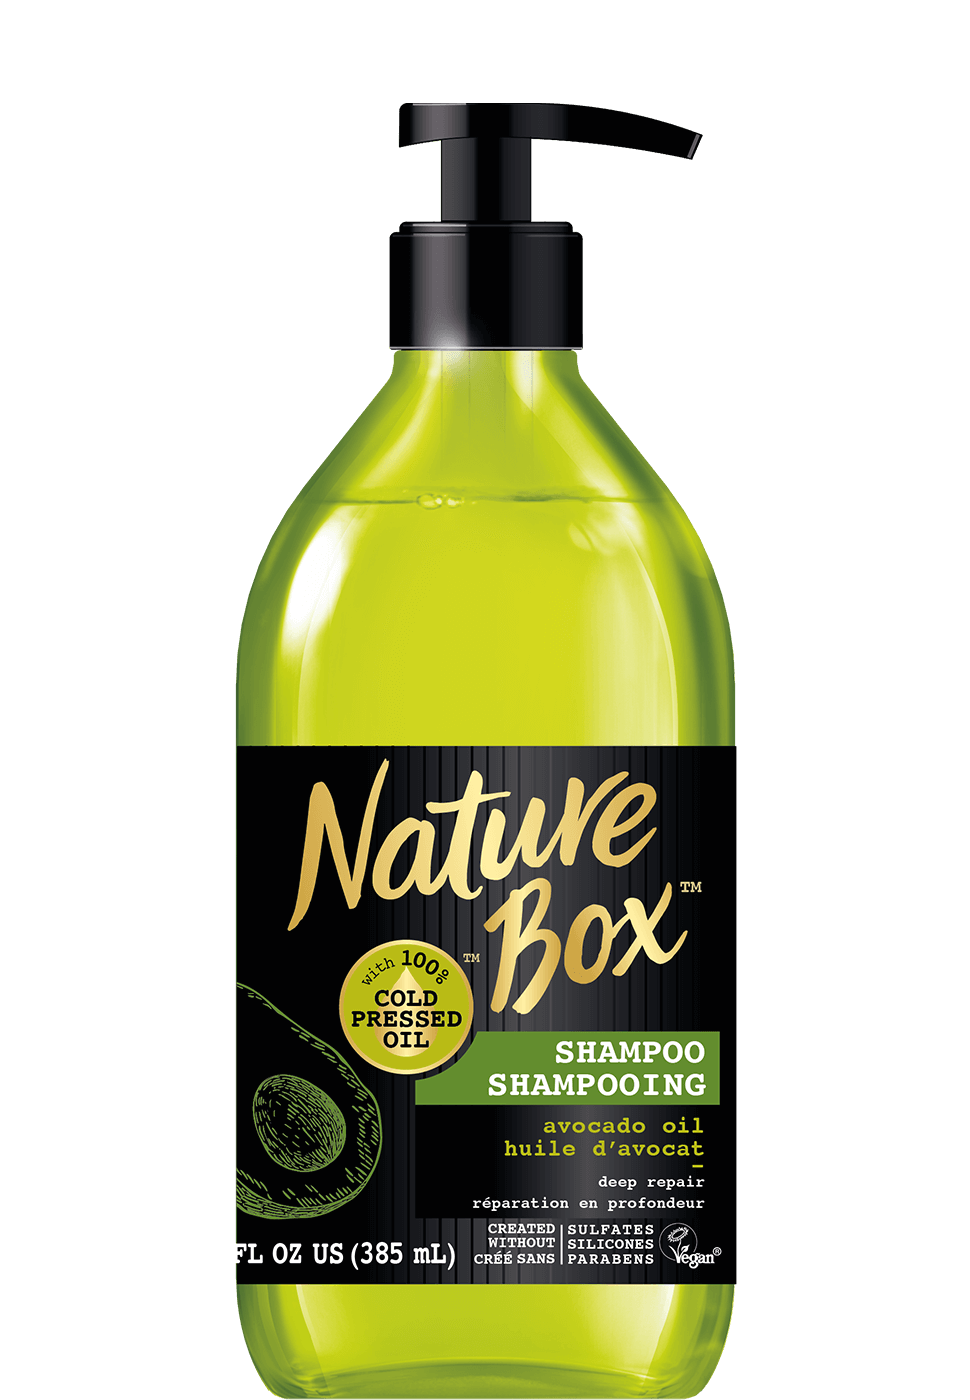 naturebox_us_avocado_shampoo_970x1400